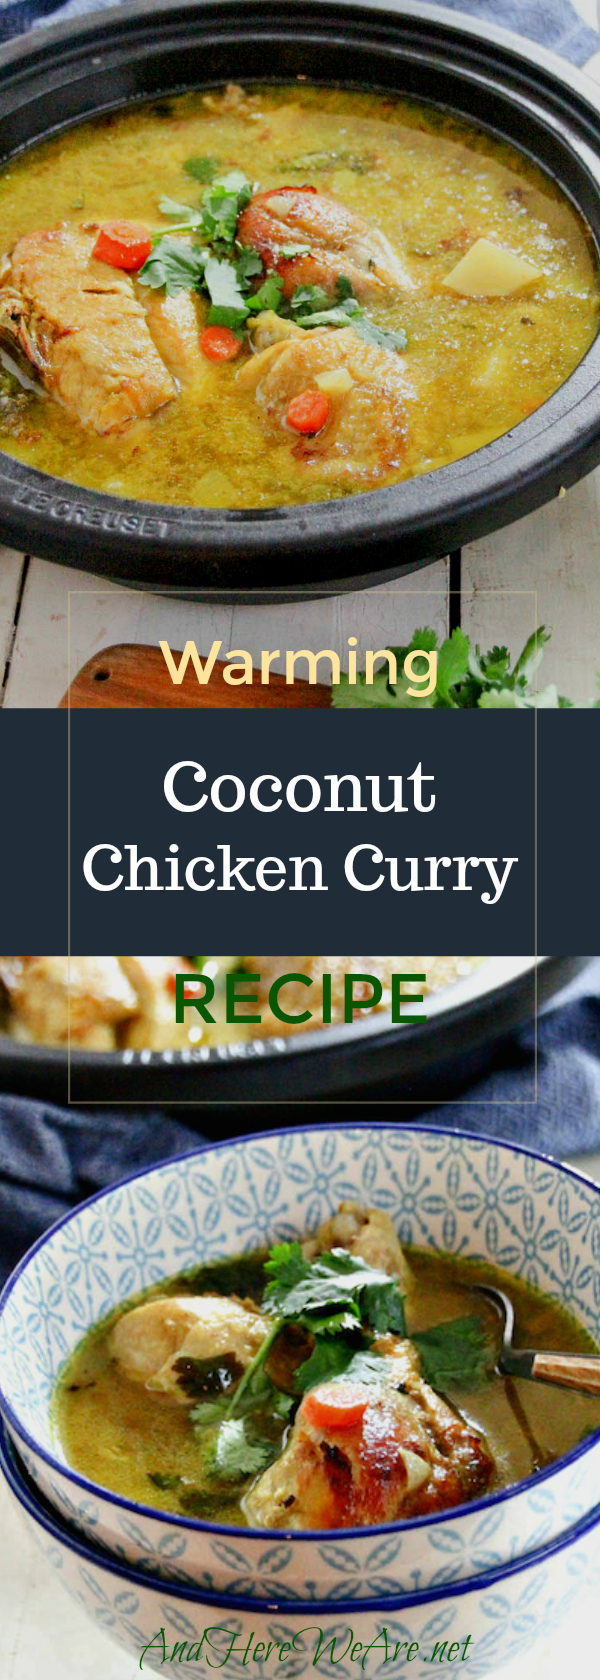 Chicken Curry with Coconut Milk